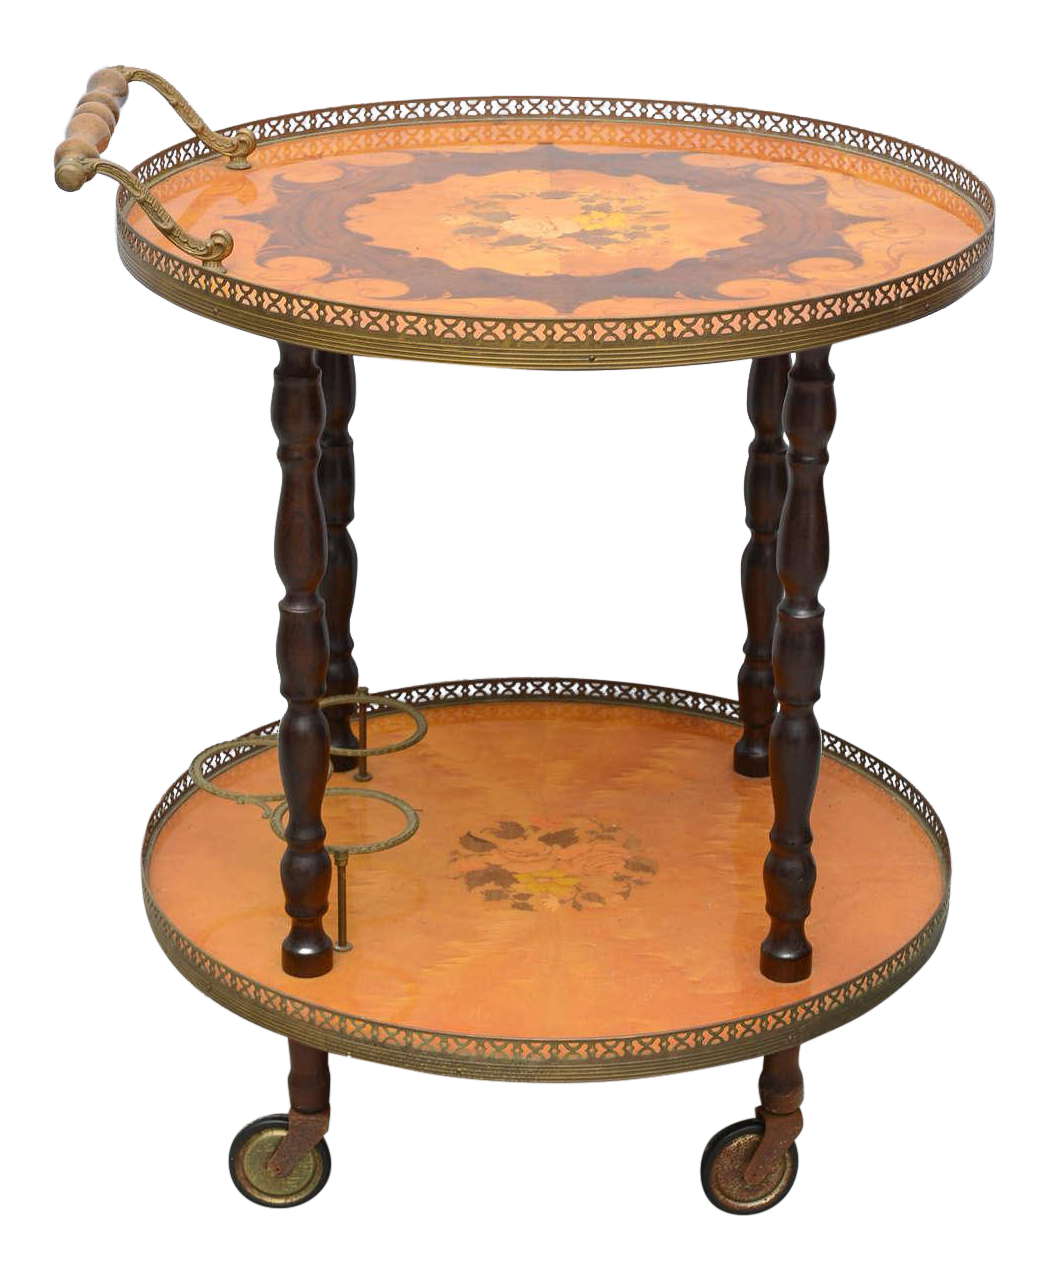 Genial Italian Marquetry Bar Cart Or Tea Trolley By Sorrento, 1960s For Sale